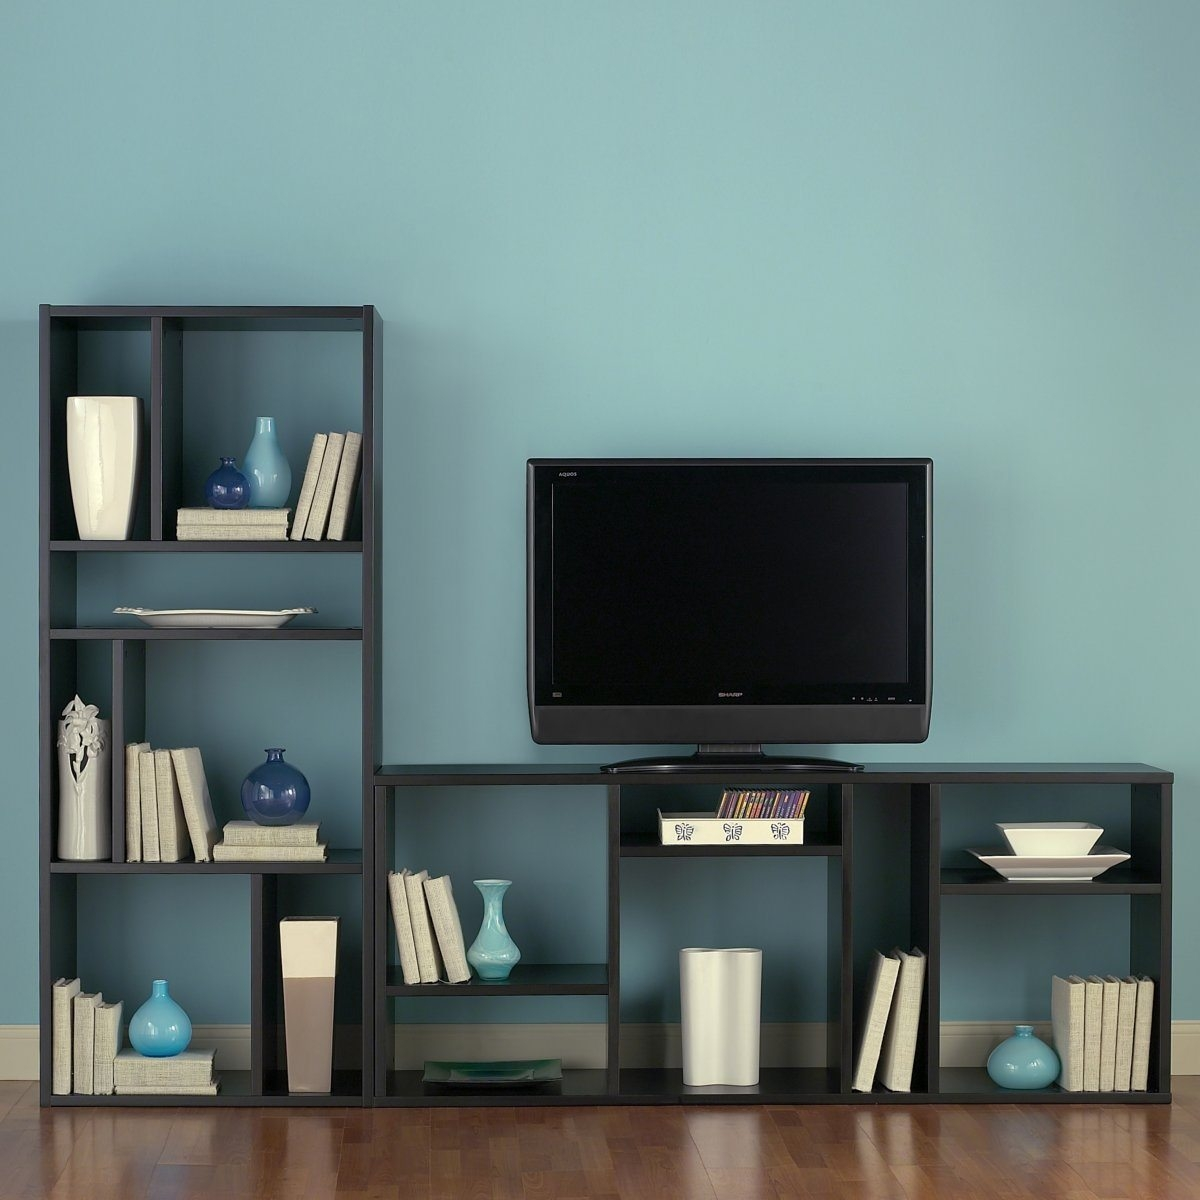 Tv Stands Inspire Black And White Tv Stand Bookshelf Design Ideas Within Tv Unit And Bookcase (View 9 of 15)